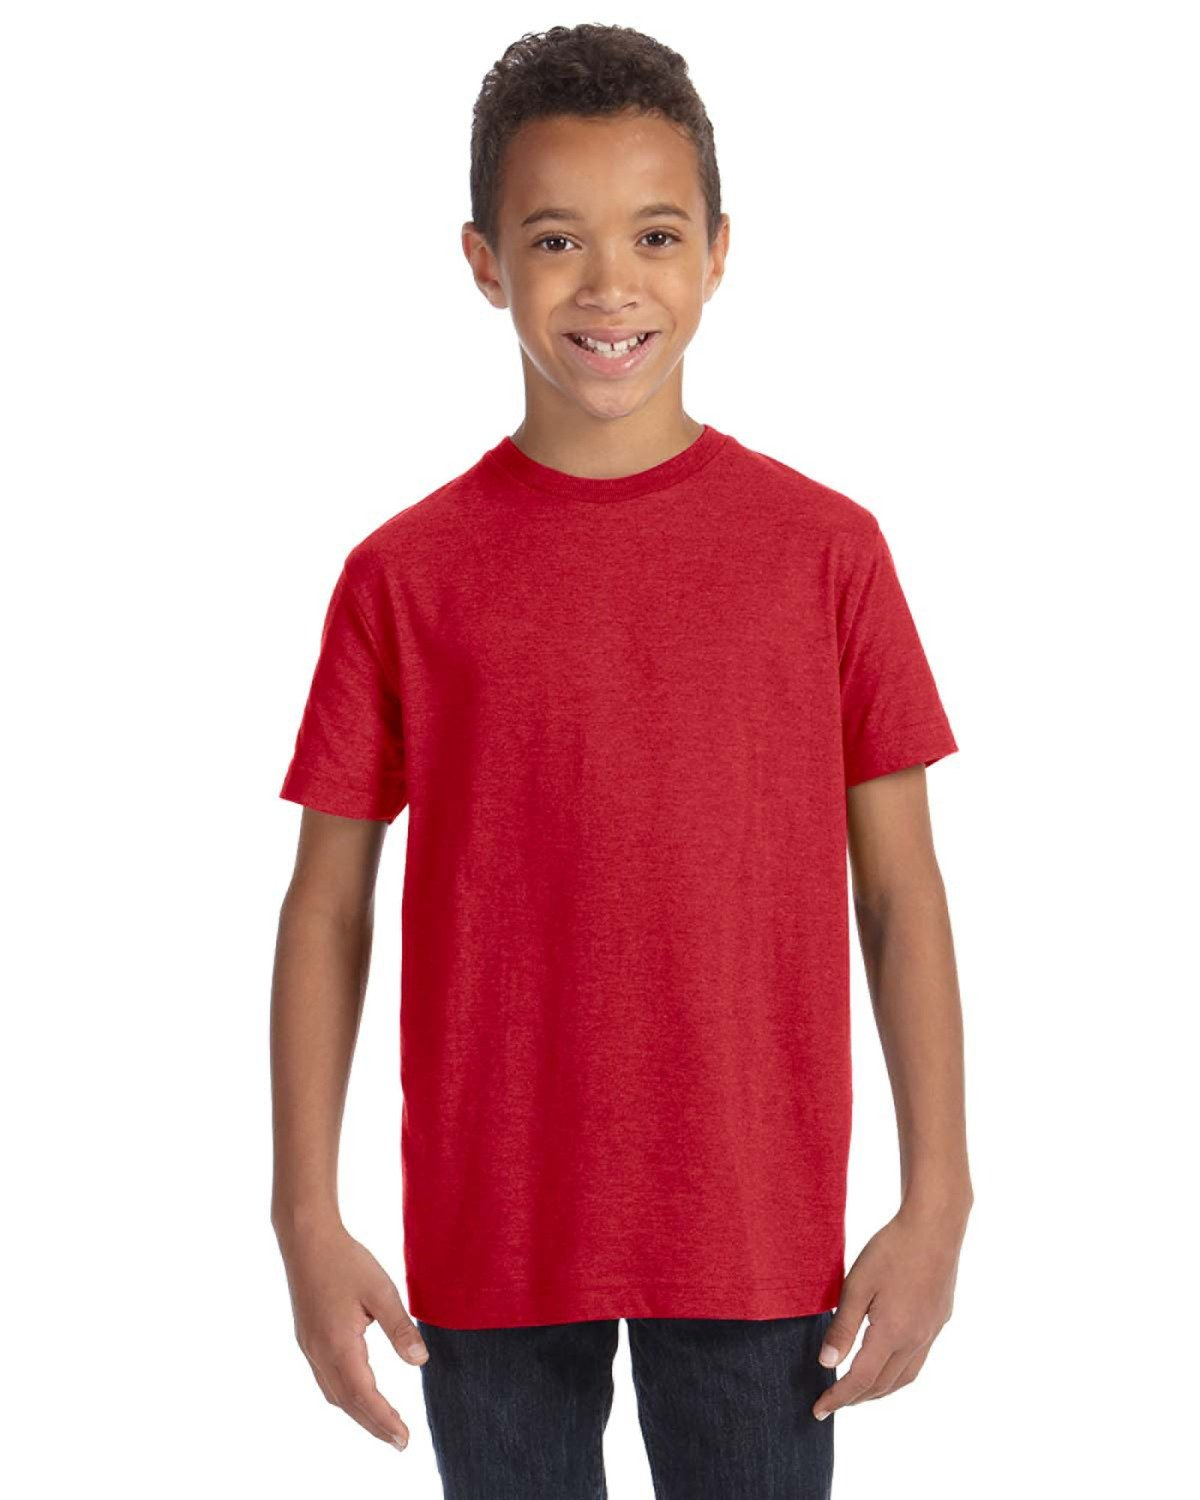 LAT Youth Fine Jersey T-Shirt VINTAGE RED